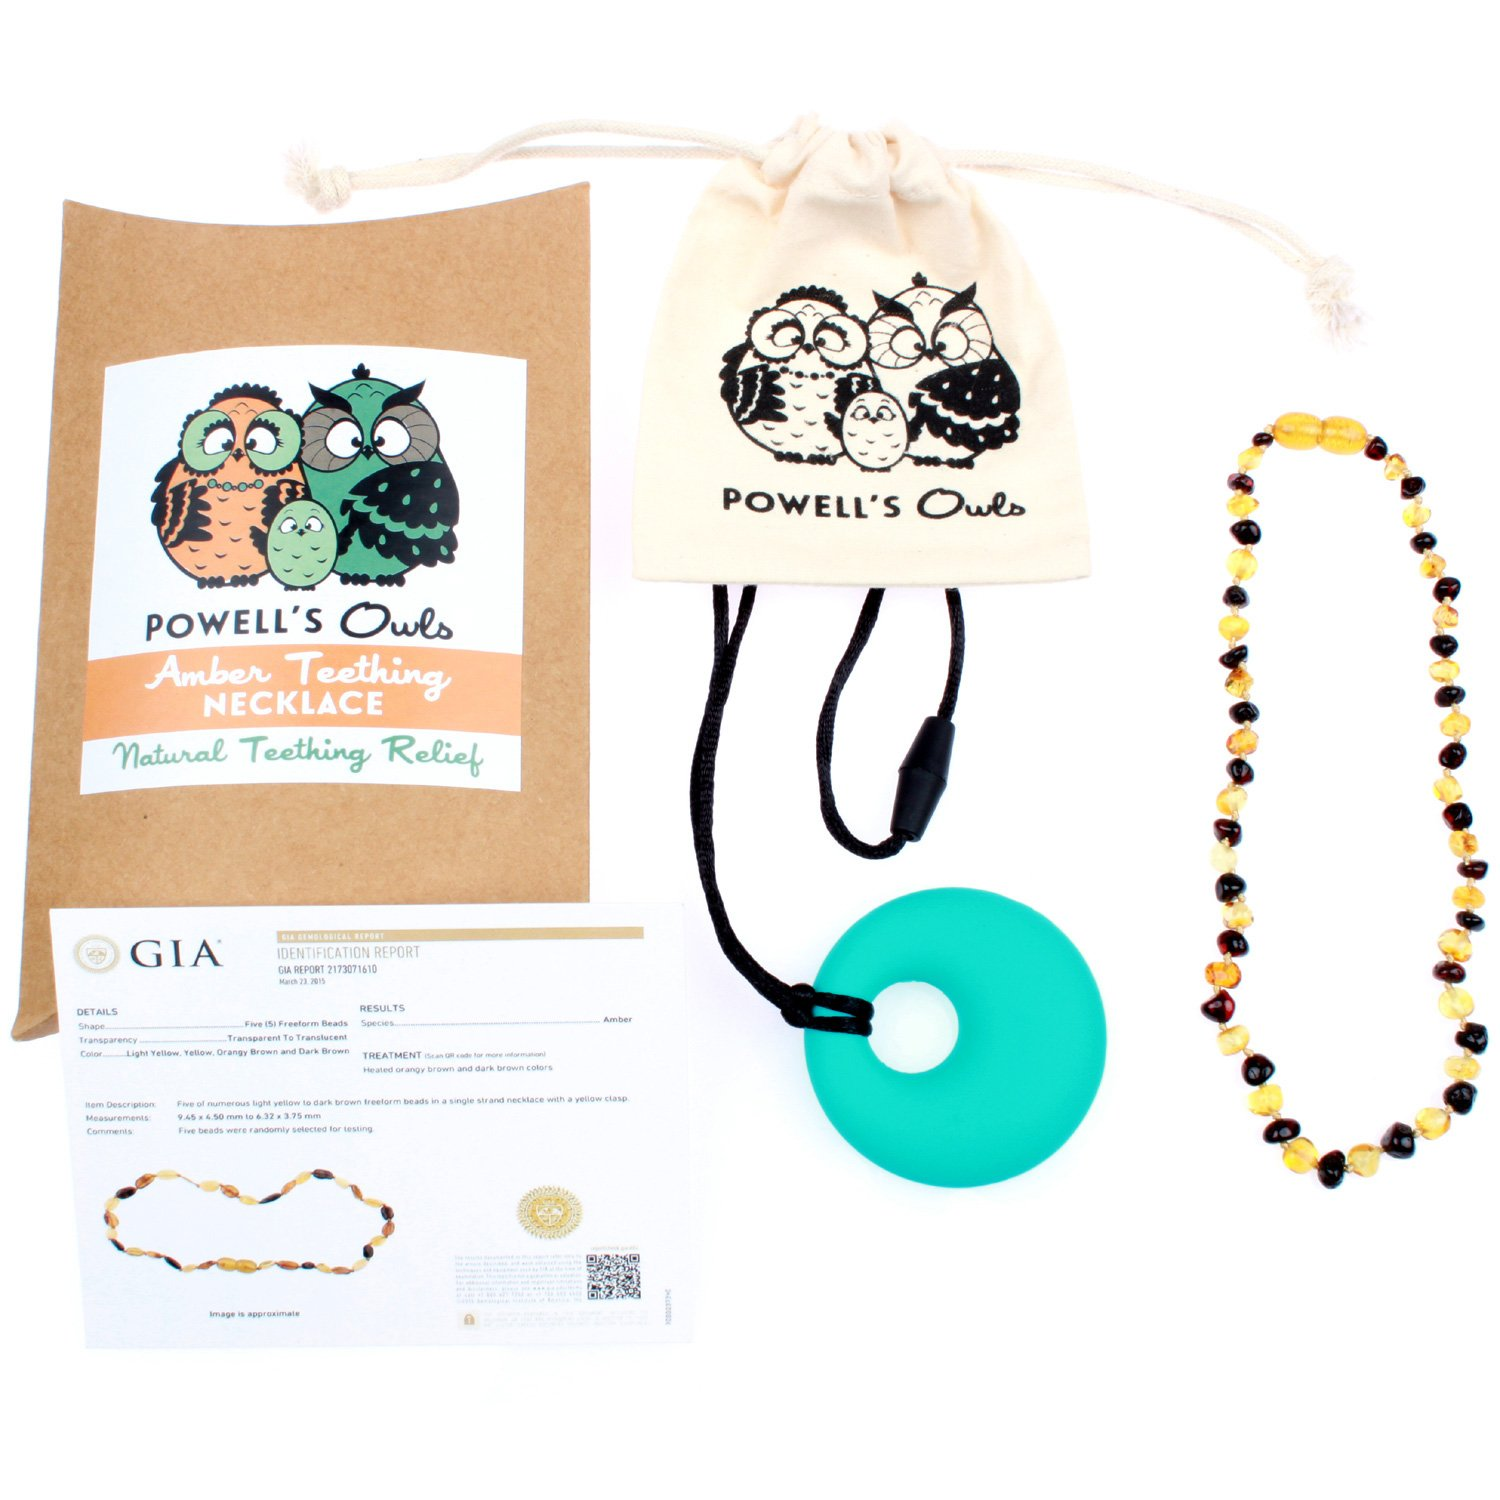 Baltic Amber Teething Necklace Gift Set + FREE Silicone Teething Pendant ($15 Value) Handcrafted, 100% USA Lab-Tested Authentic Amber - Teething Pain Relief (Unisex - Honey/Cherry Mix - 12.5 Inches) by Powell's Owls